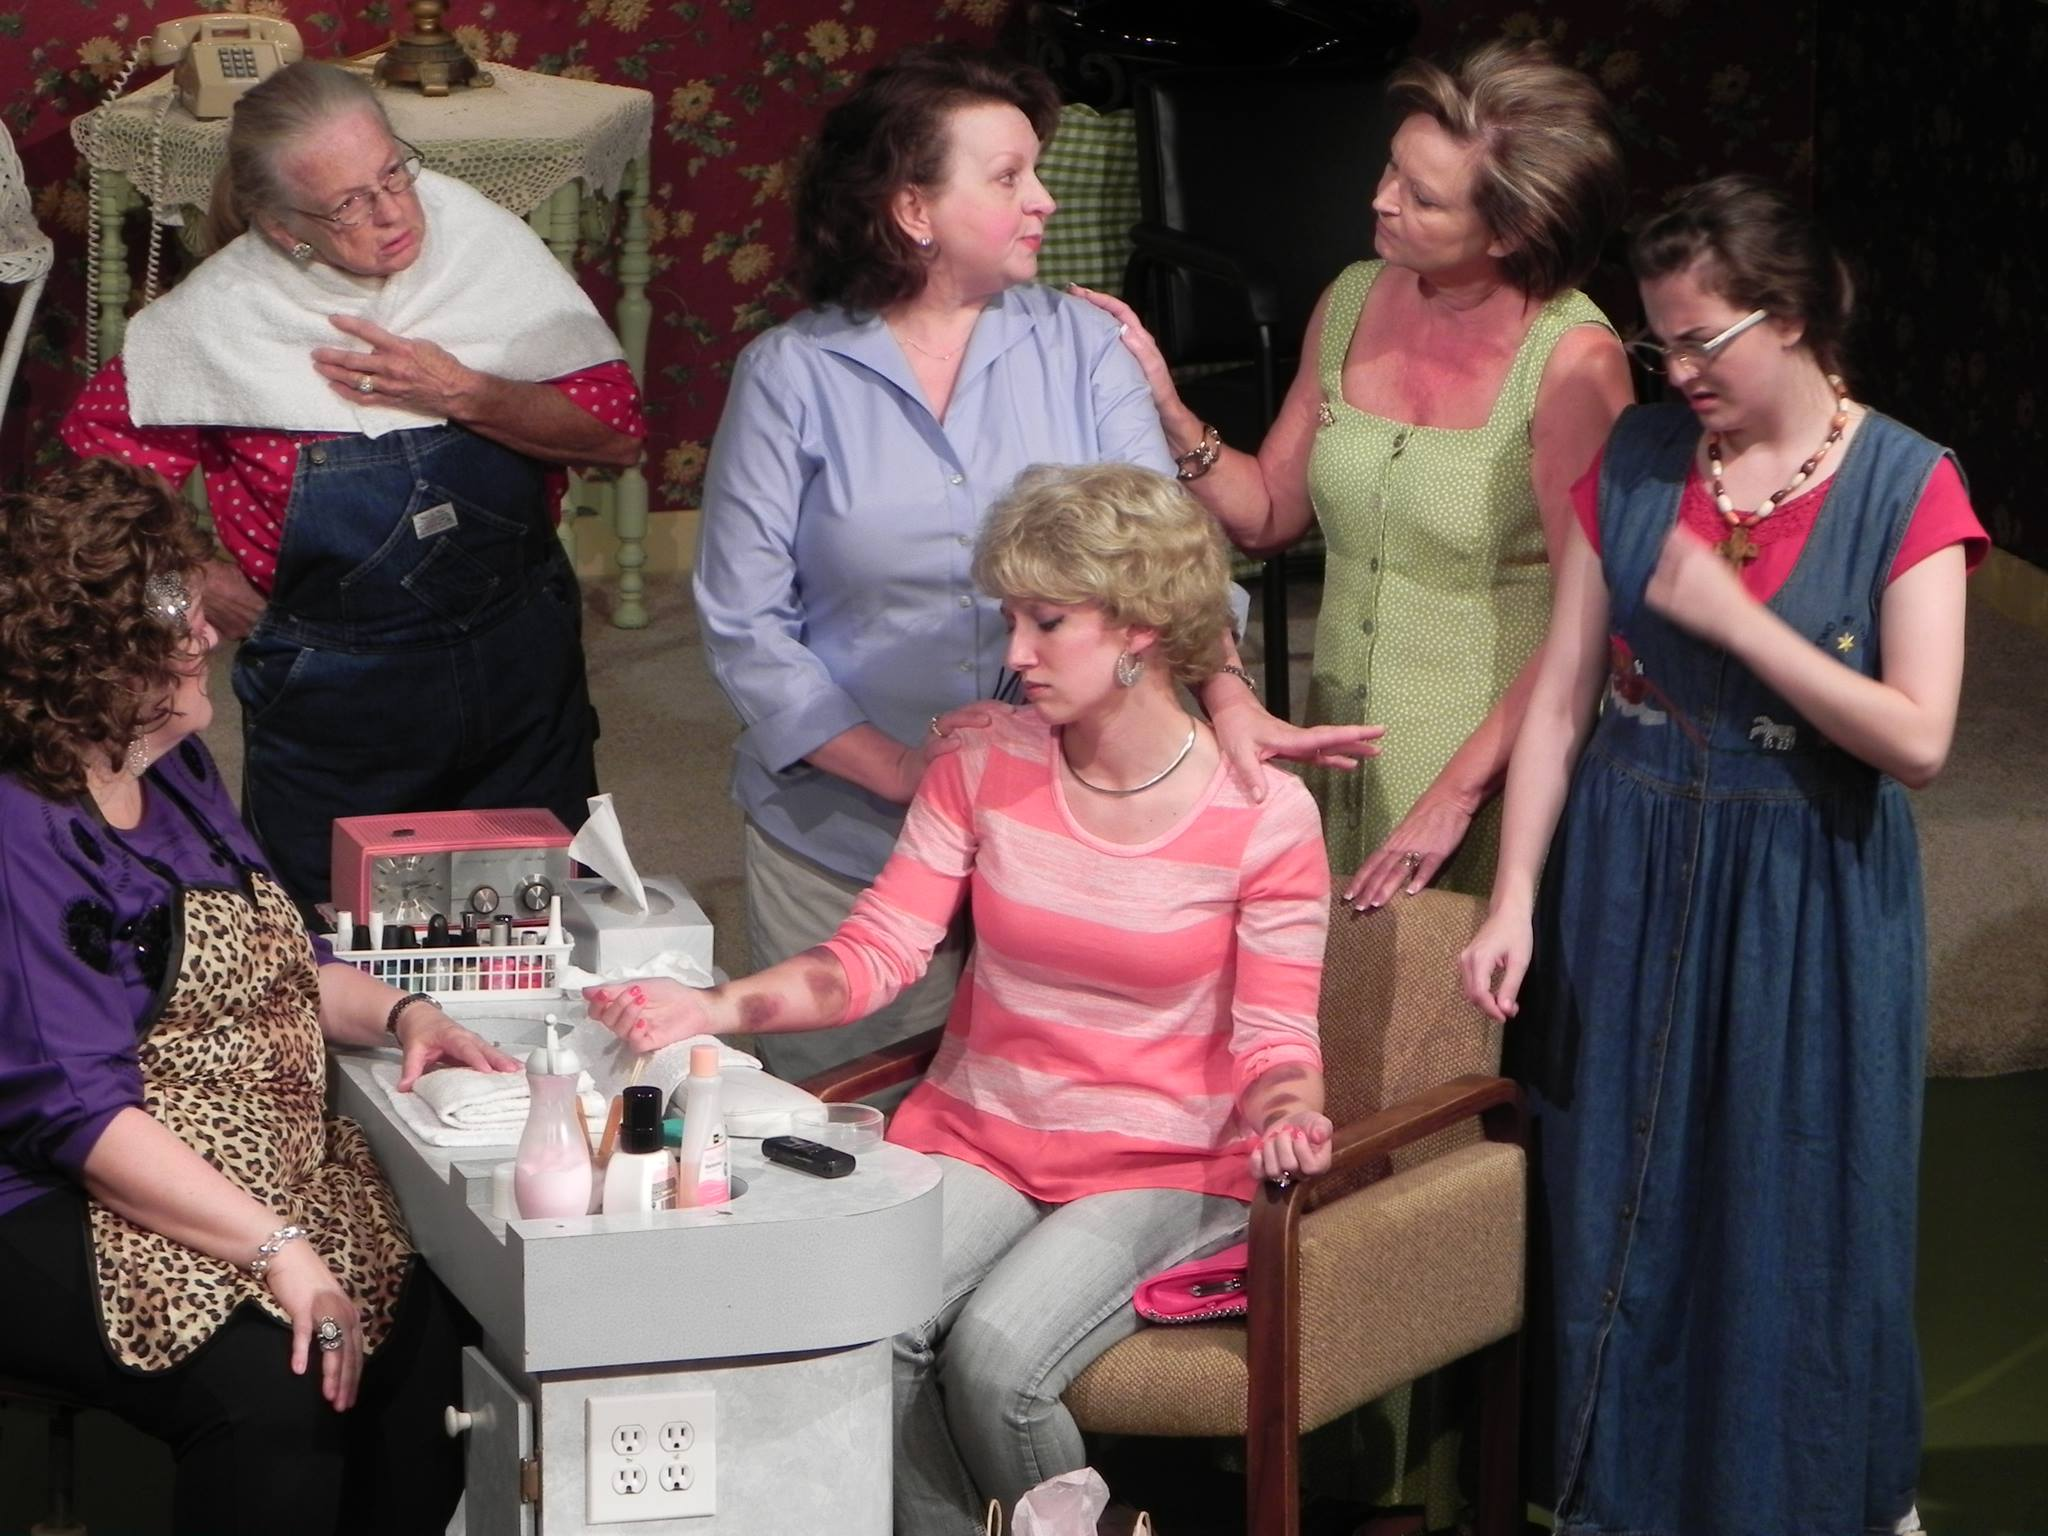 Steel Magnolias - Sept. 2013